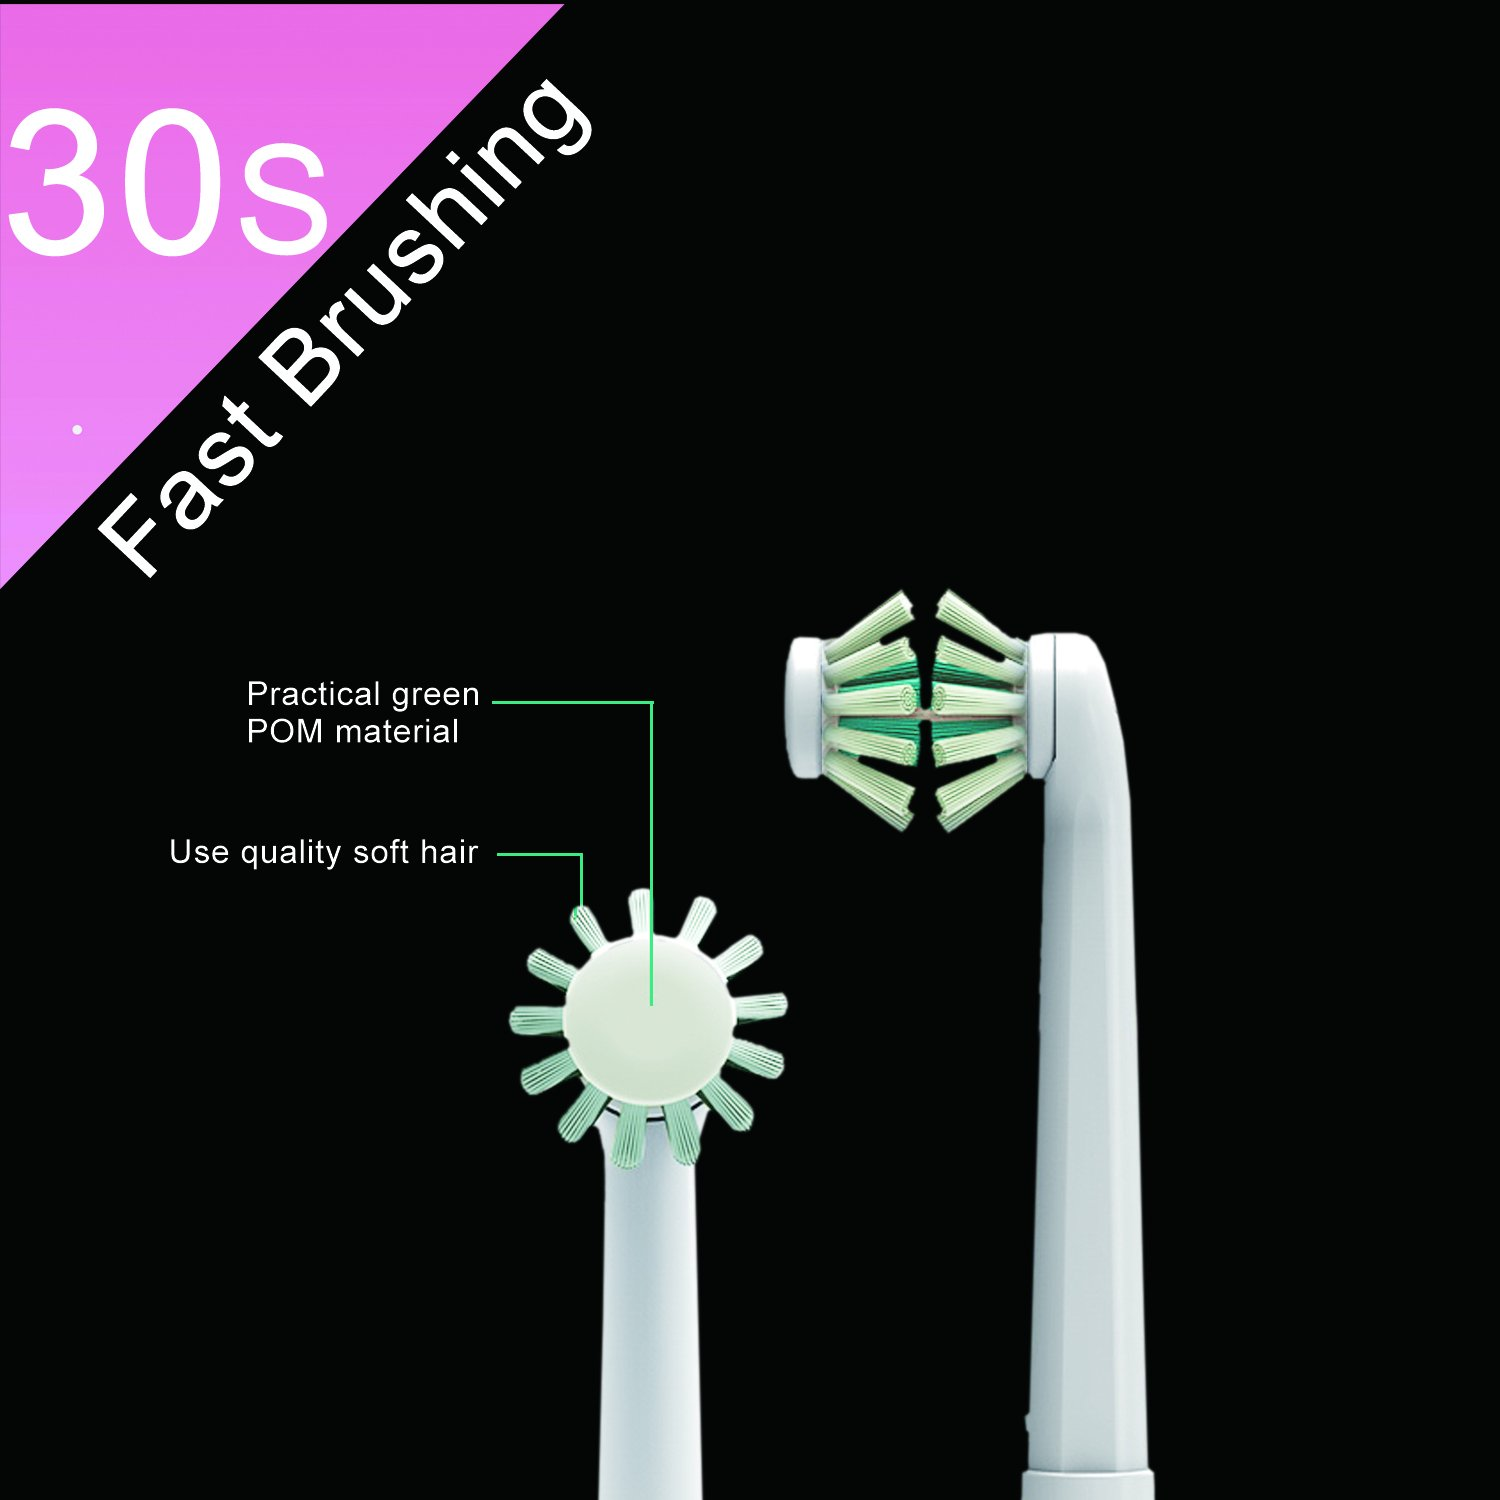 Electric toothbrush kids,NeWisdom 360° rotating 30s FAST brushing Rechargeable WIRELESS CHARGING Electric Toothbrush for Children,4 hours charging,30 days working (Wireless Charge Pink 9-14) by NeWisdom (Image #4)